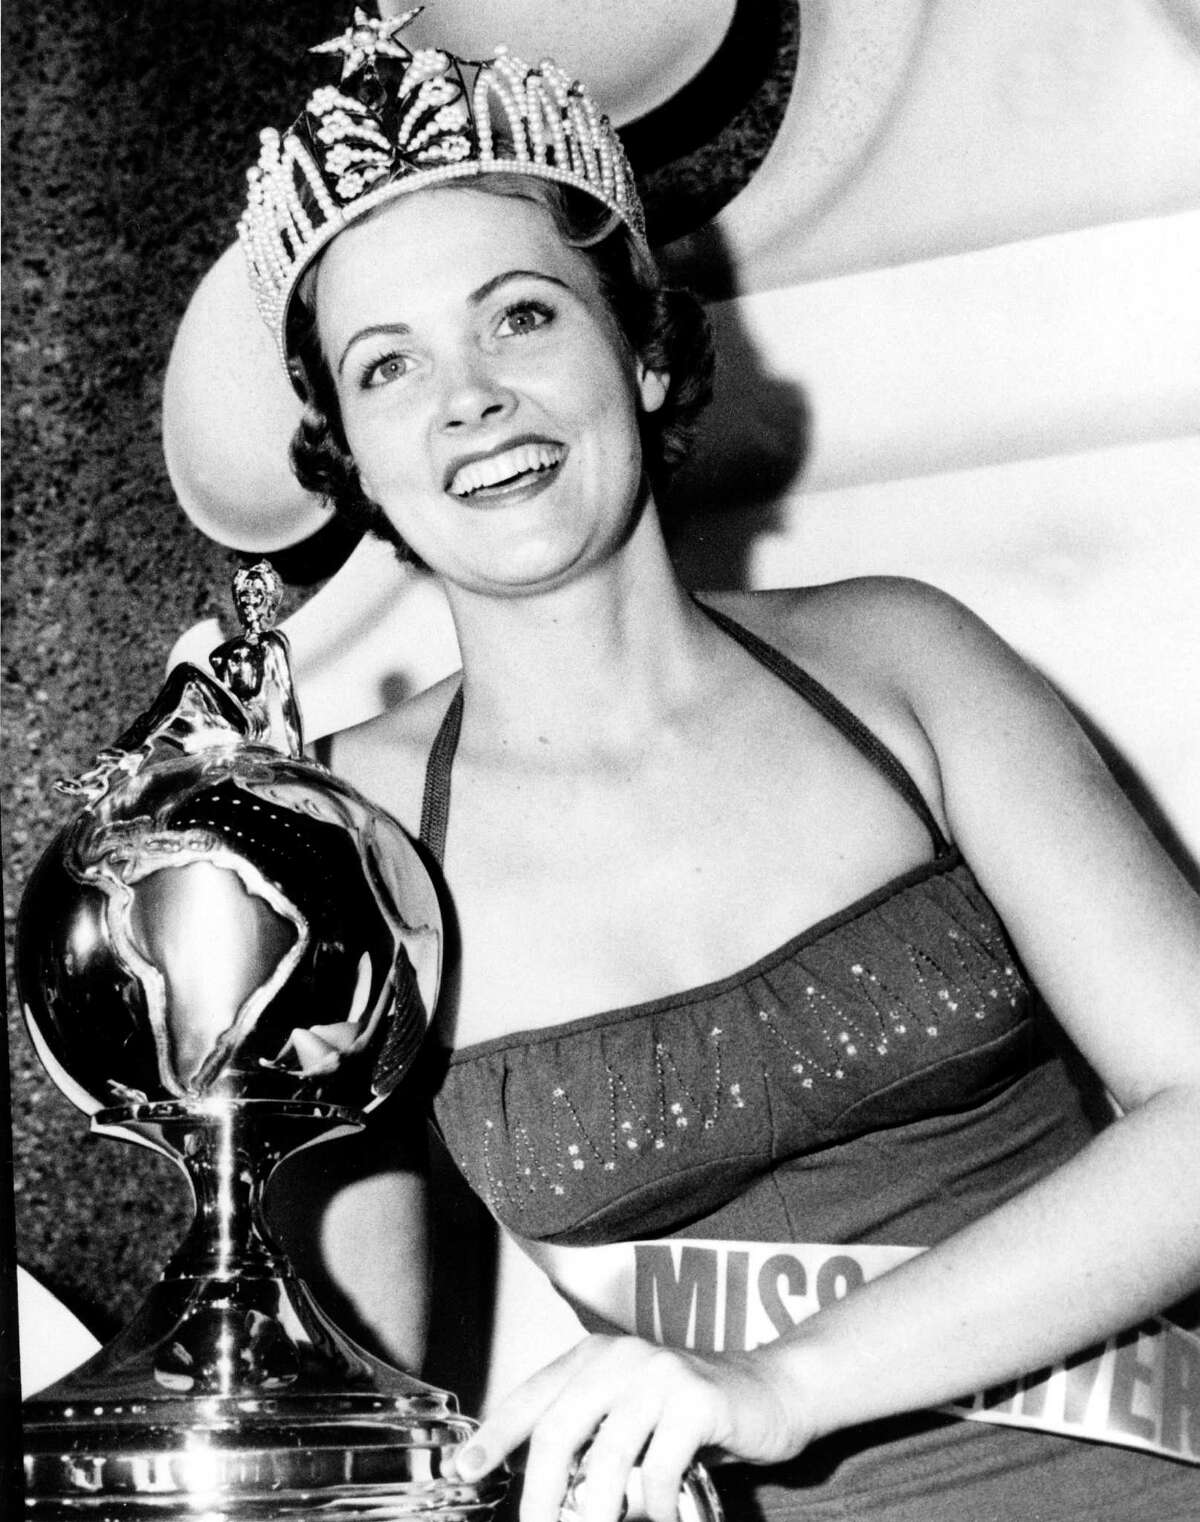 Miriam Stevenson, Miss USA 1954, from South Carolina, was the first Miss USA to become Miss Universe. It wasn't until 1967 that Miss USA winners who ascended to the Miss Universe title passed on their national crown to the first runner-up.